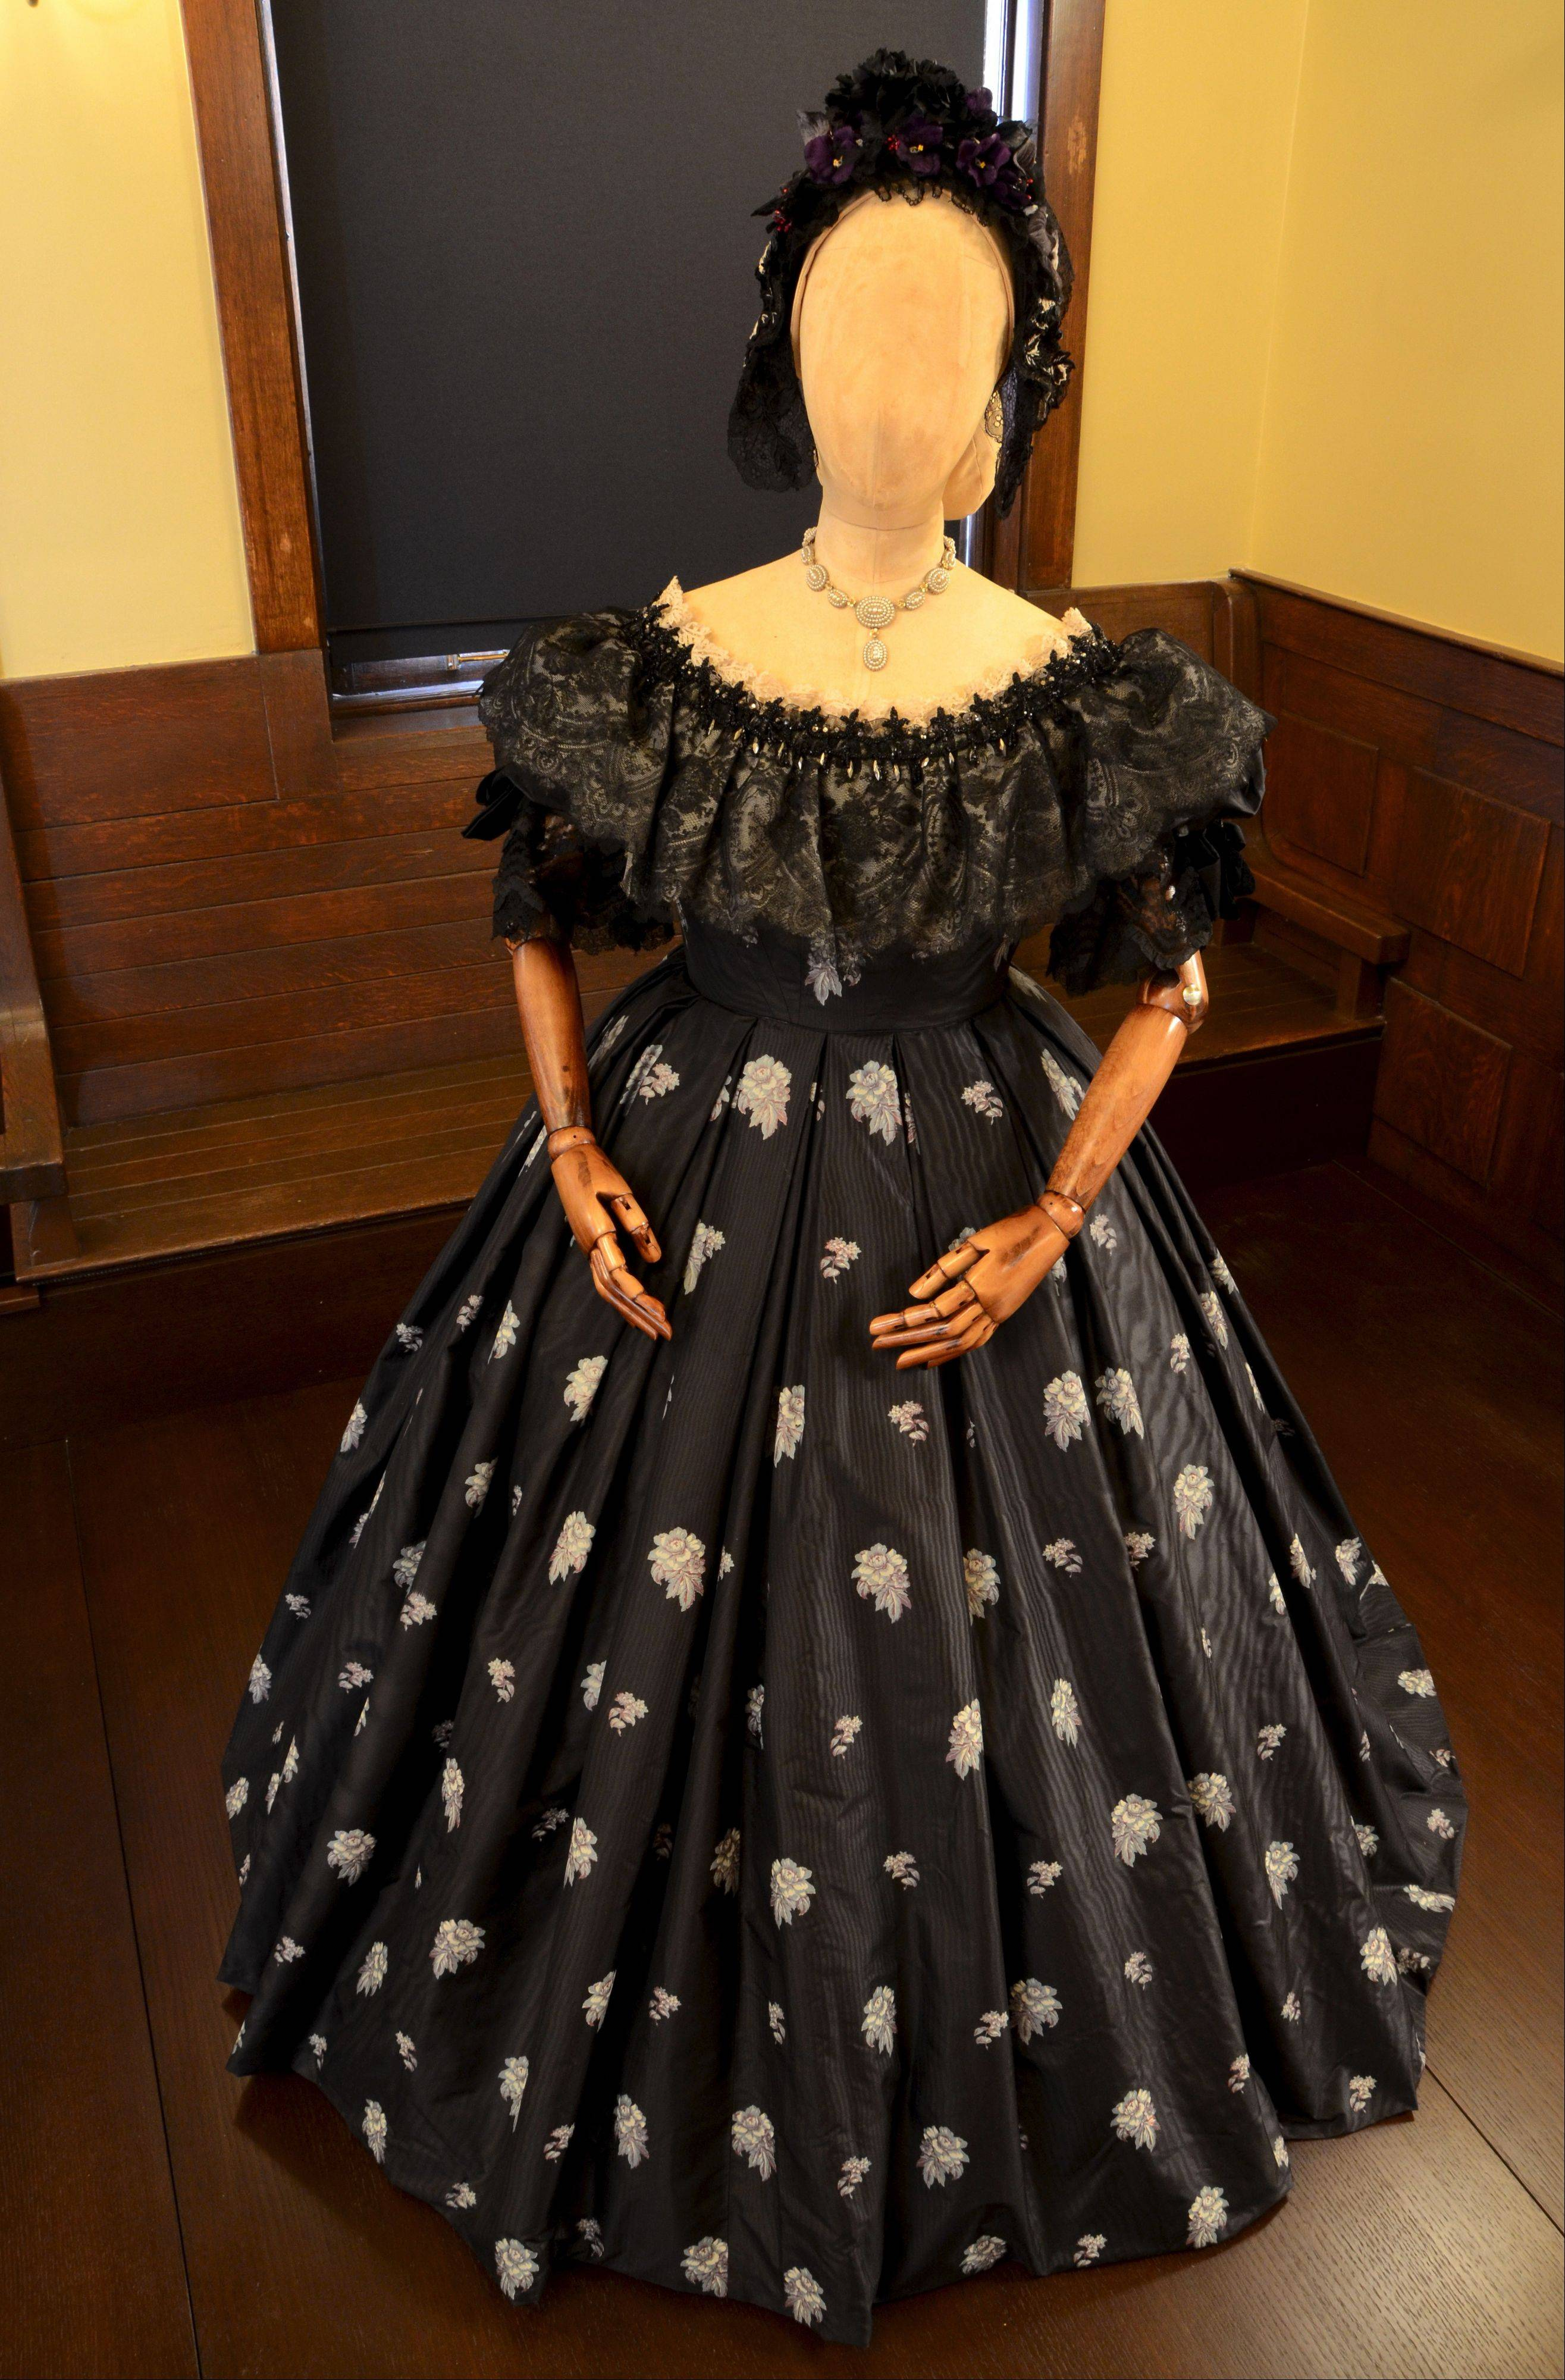 The exhibit includes dresses worn by Sally Field as Mary Todd Lincoln.